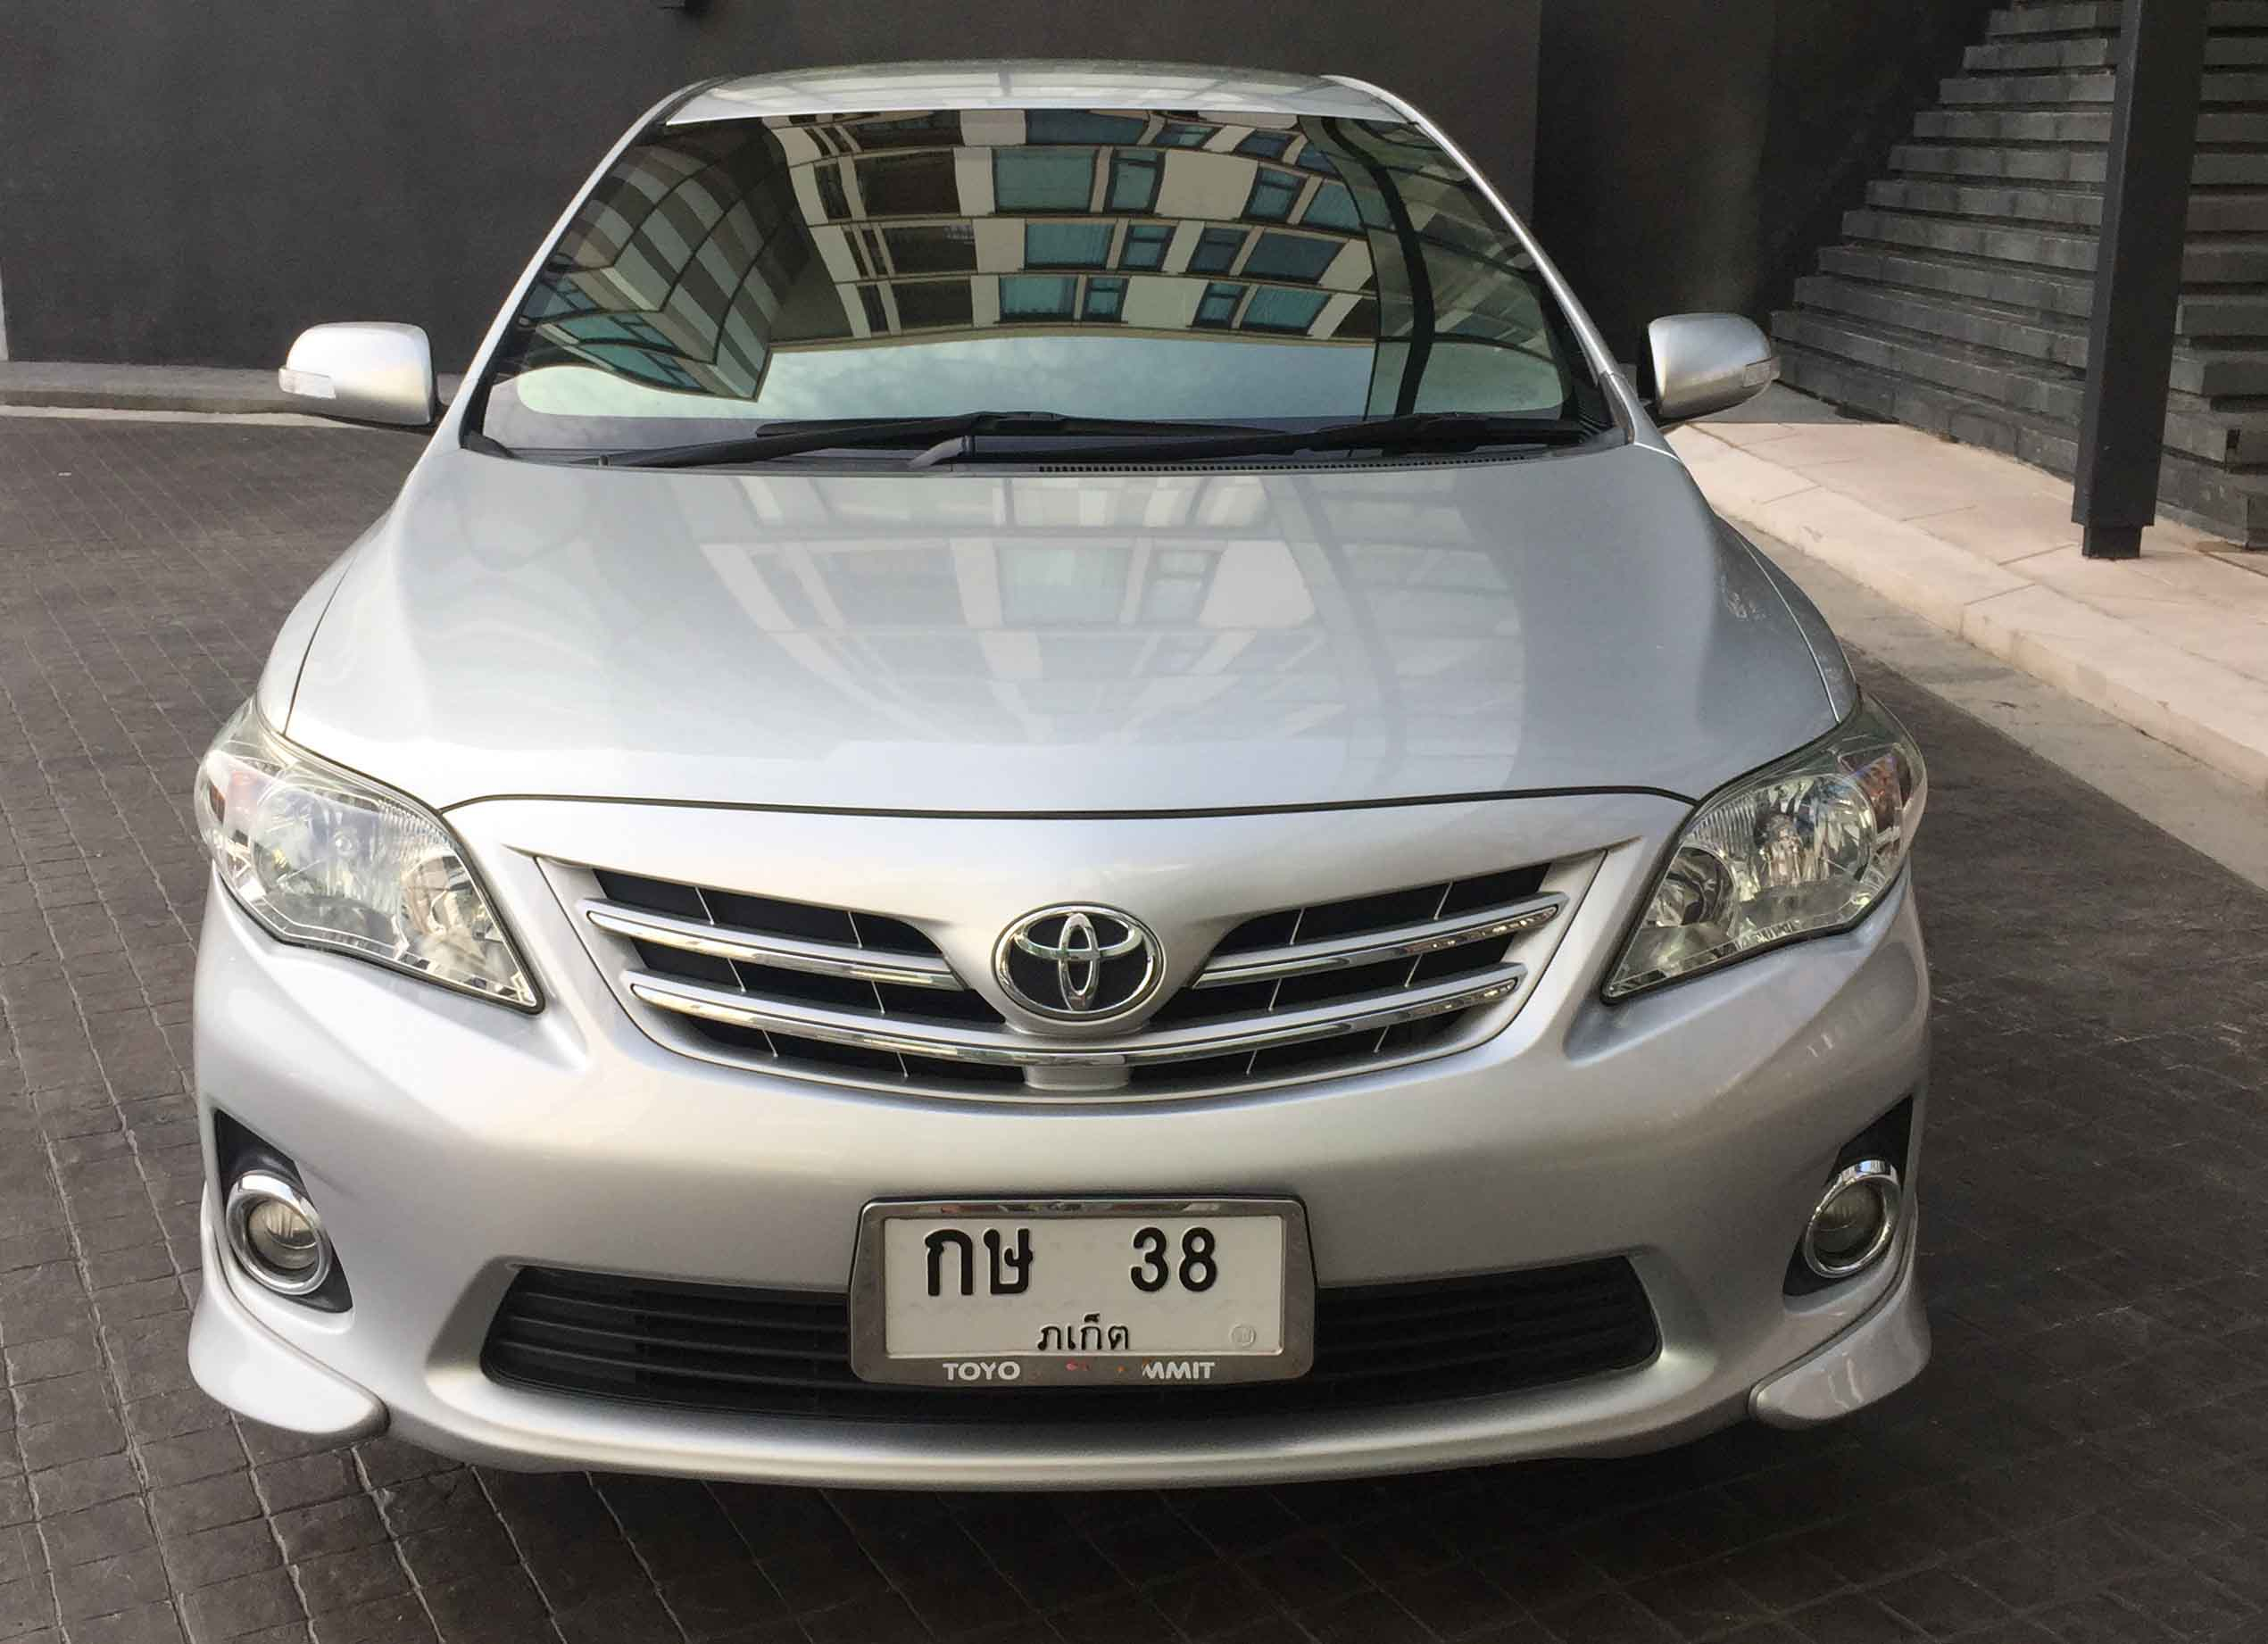 Beautiful Toyota Altis 2013 for sale